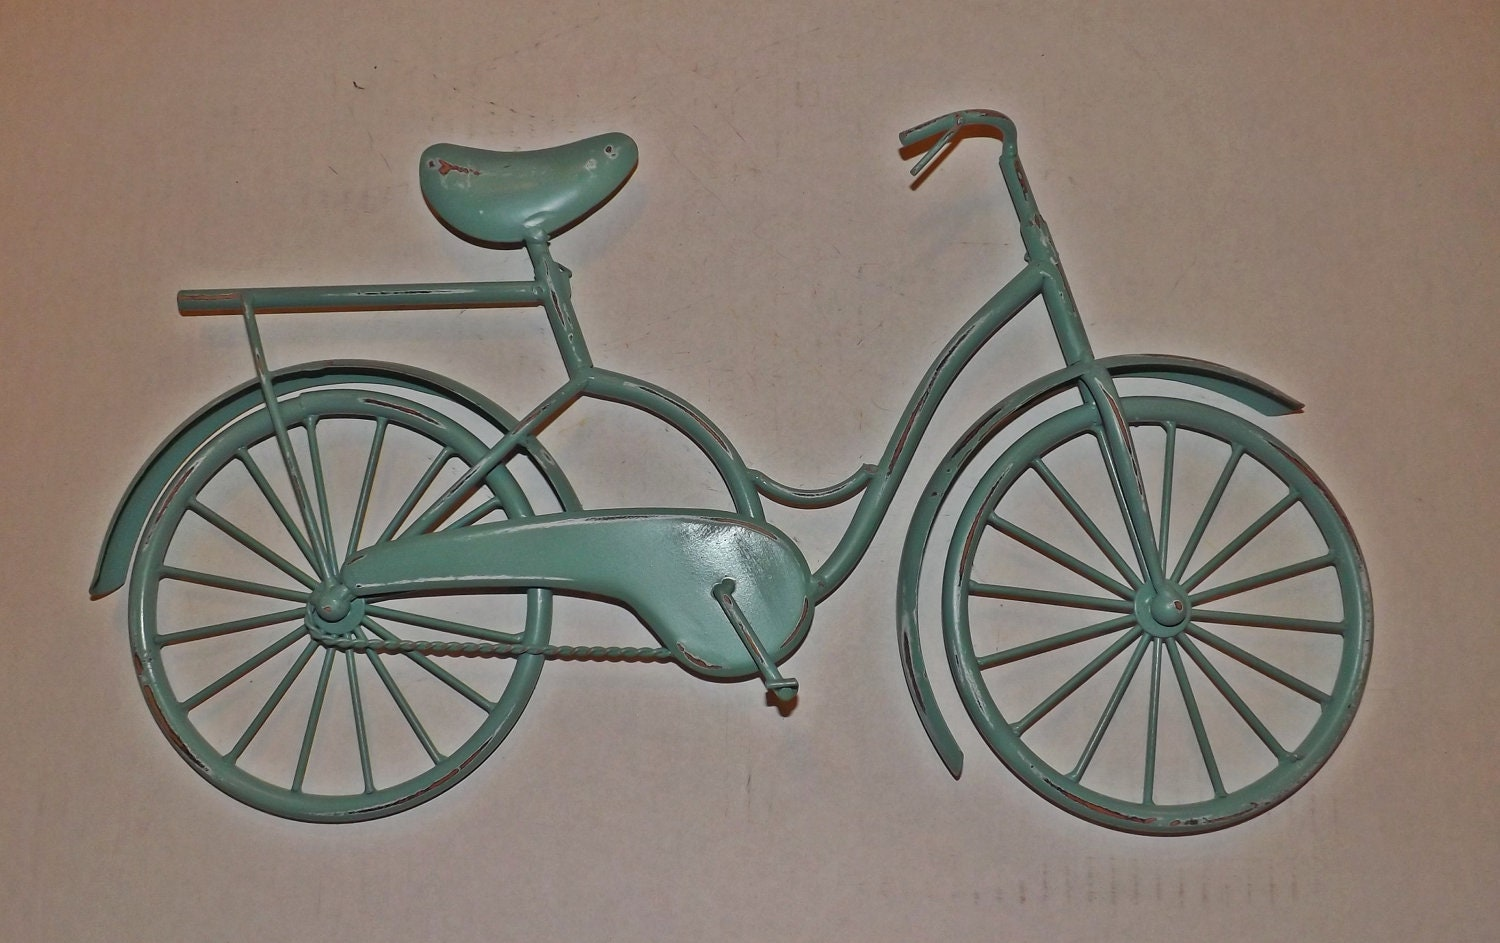 Bicycle Wall Art Wall Decor Metal Bicycle By & Wall Art Bicycle - Elitflat